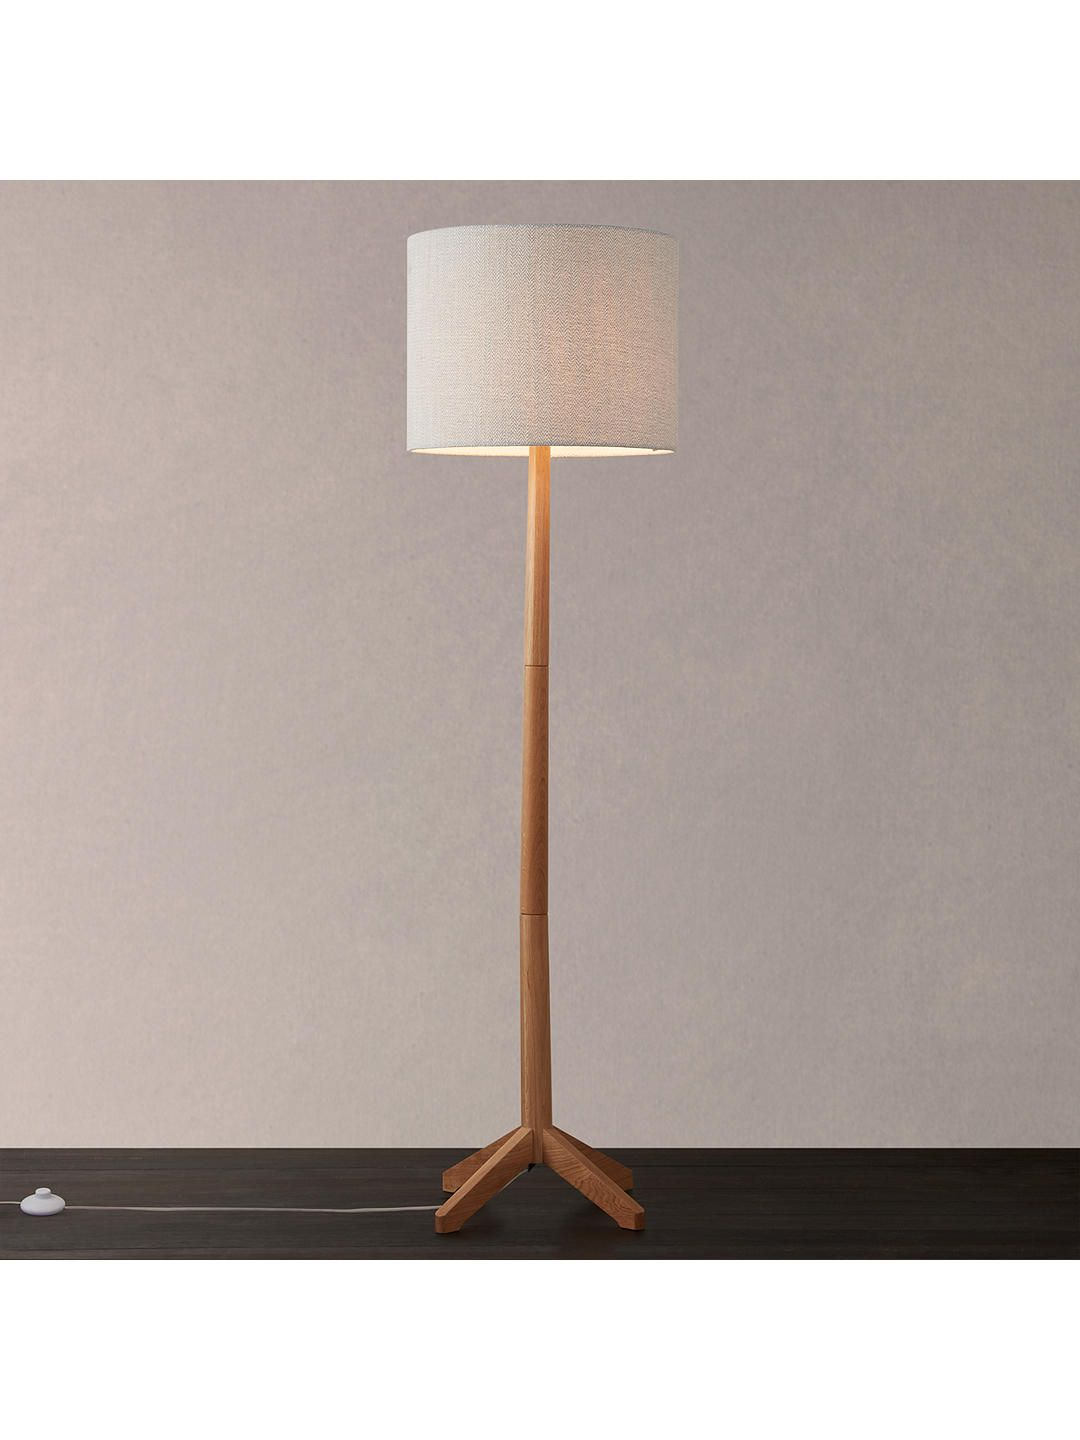 Floor Lamps Modern Tripod Floor Lamps Lights Wooden Floor Lamps Floor Lamp Base Floor Lamp